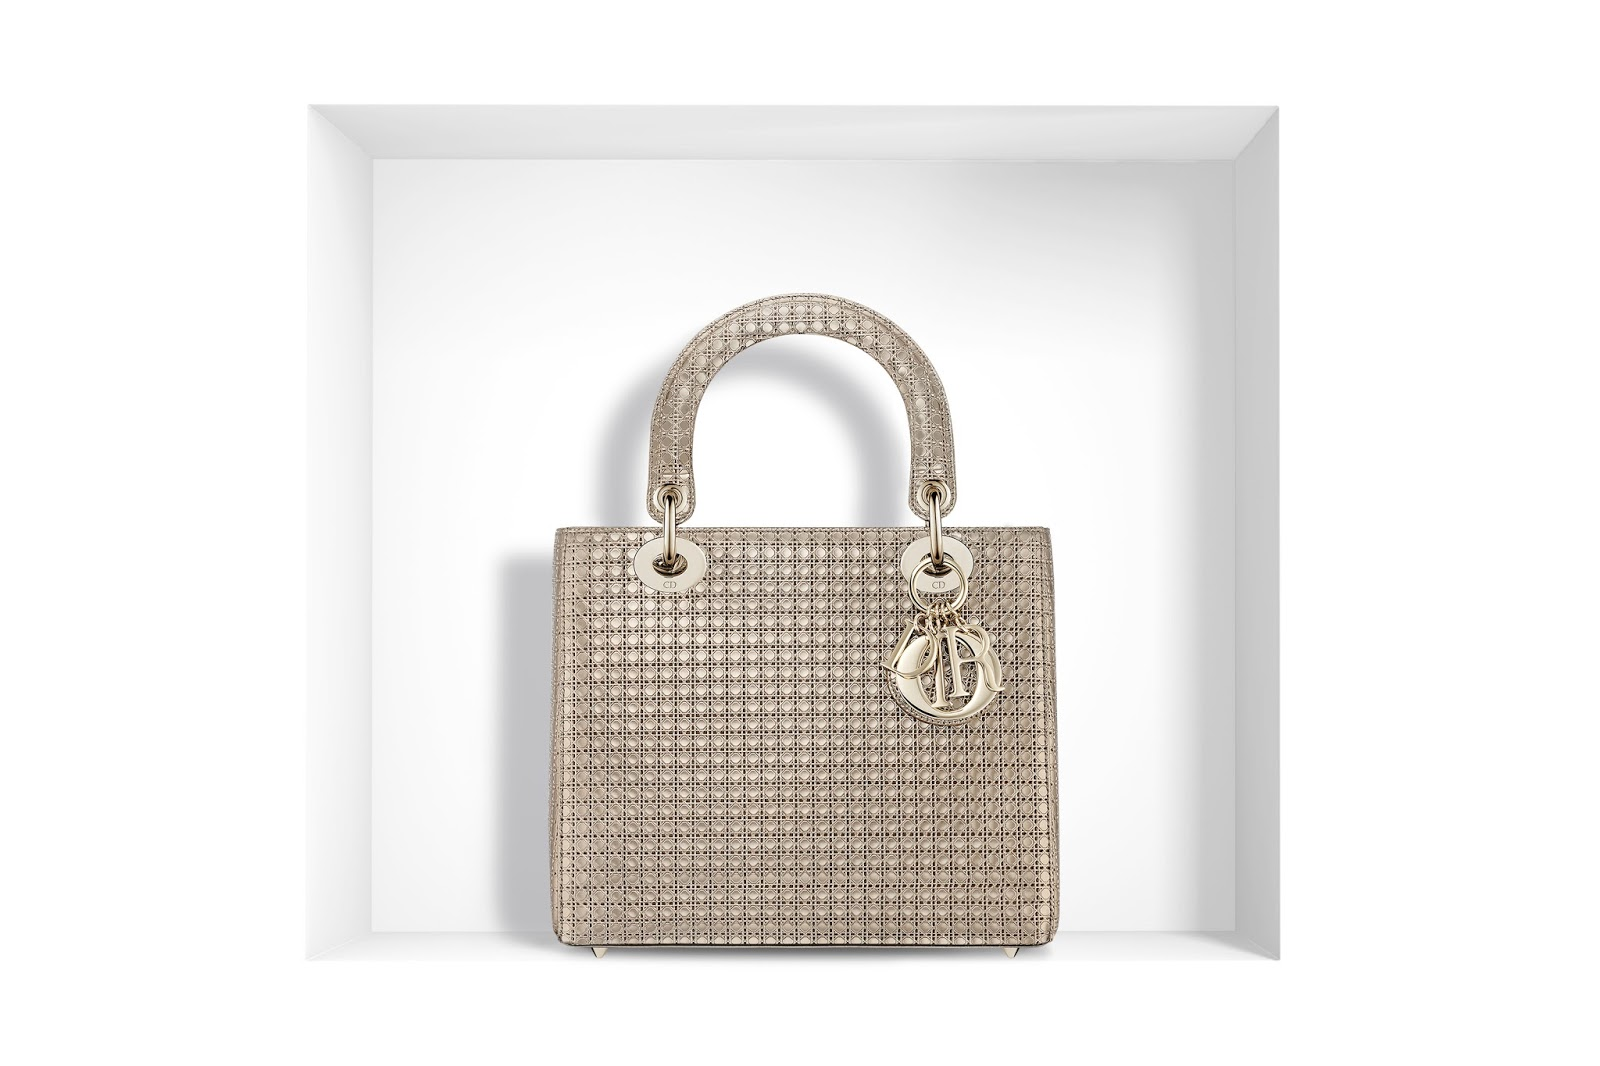 26af95e351c LADY DIOR BAG CHAMPAGNE METALLIC CALFSKIN WITH MICRO-CANNAGE MOTIF